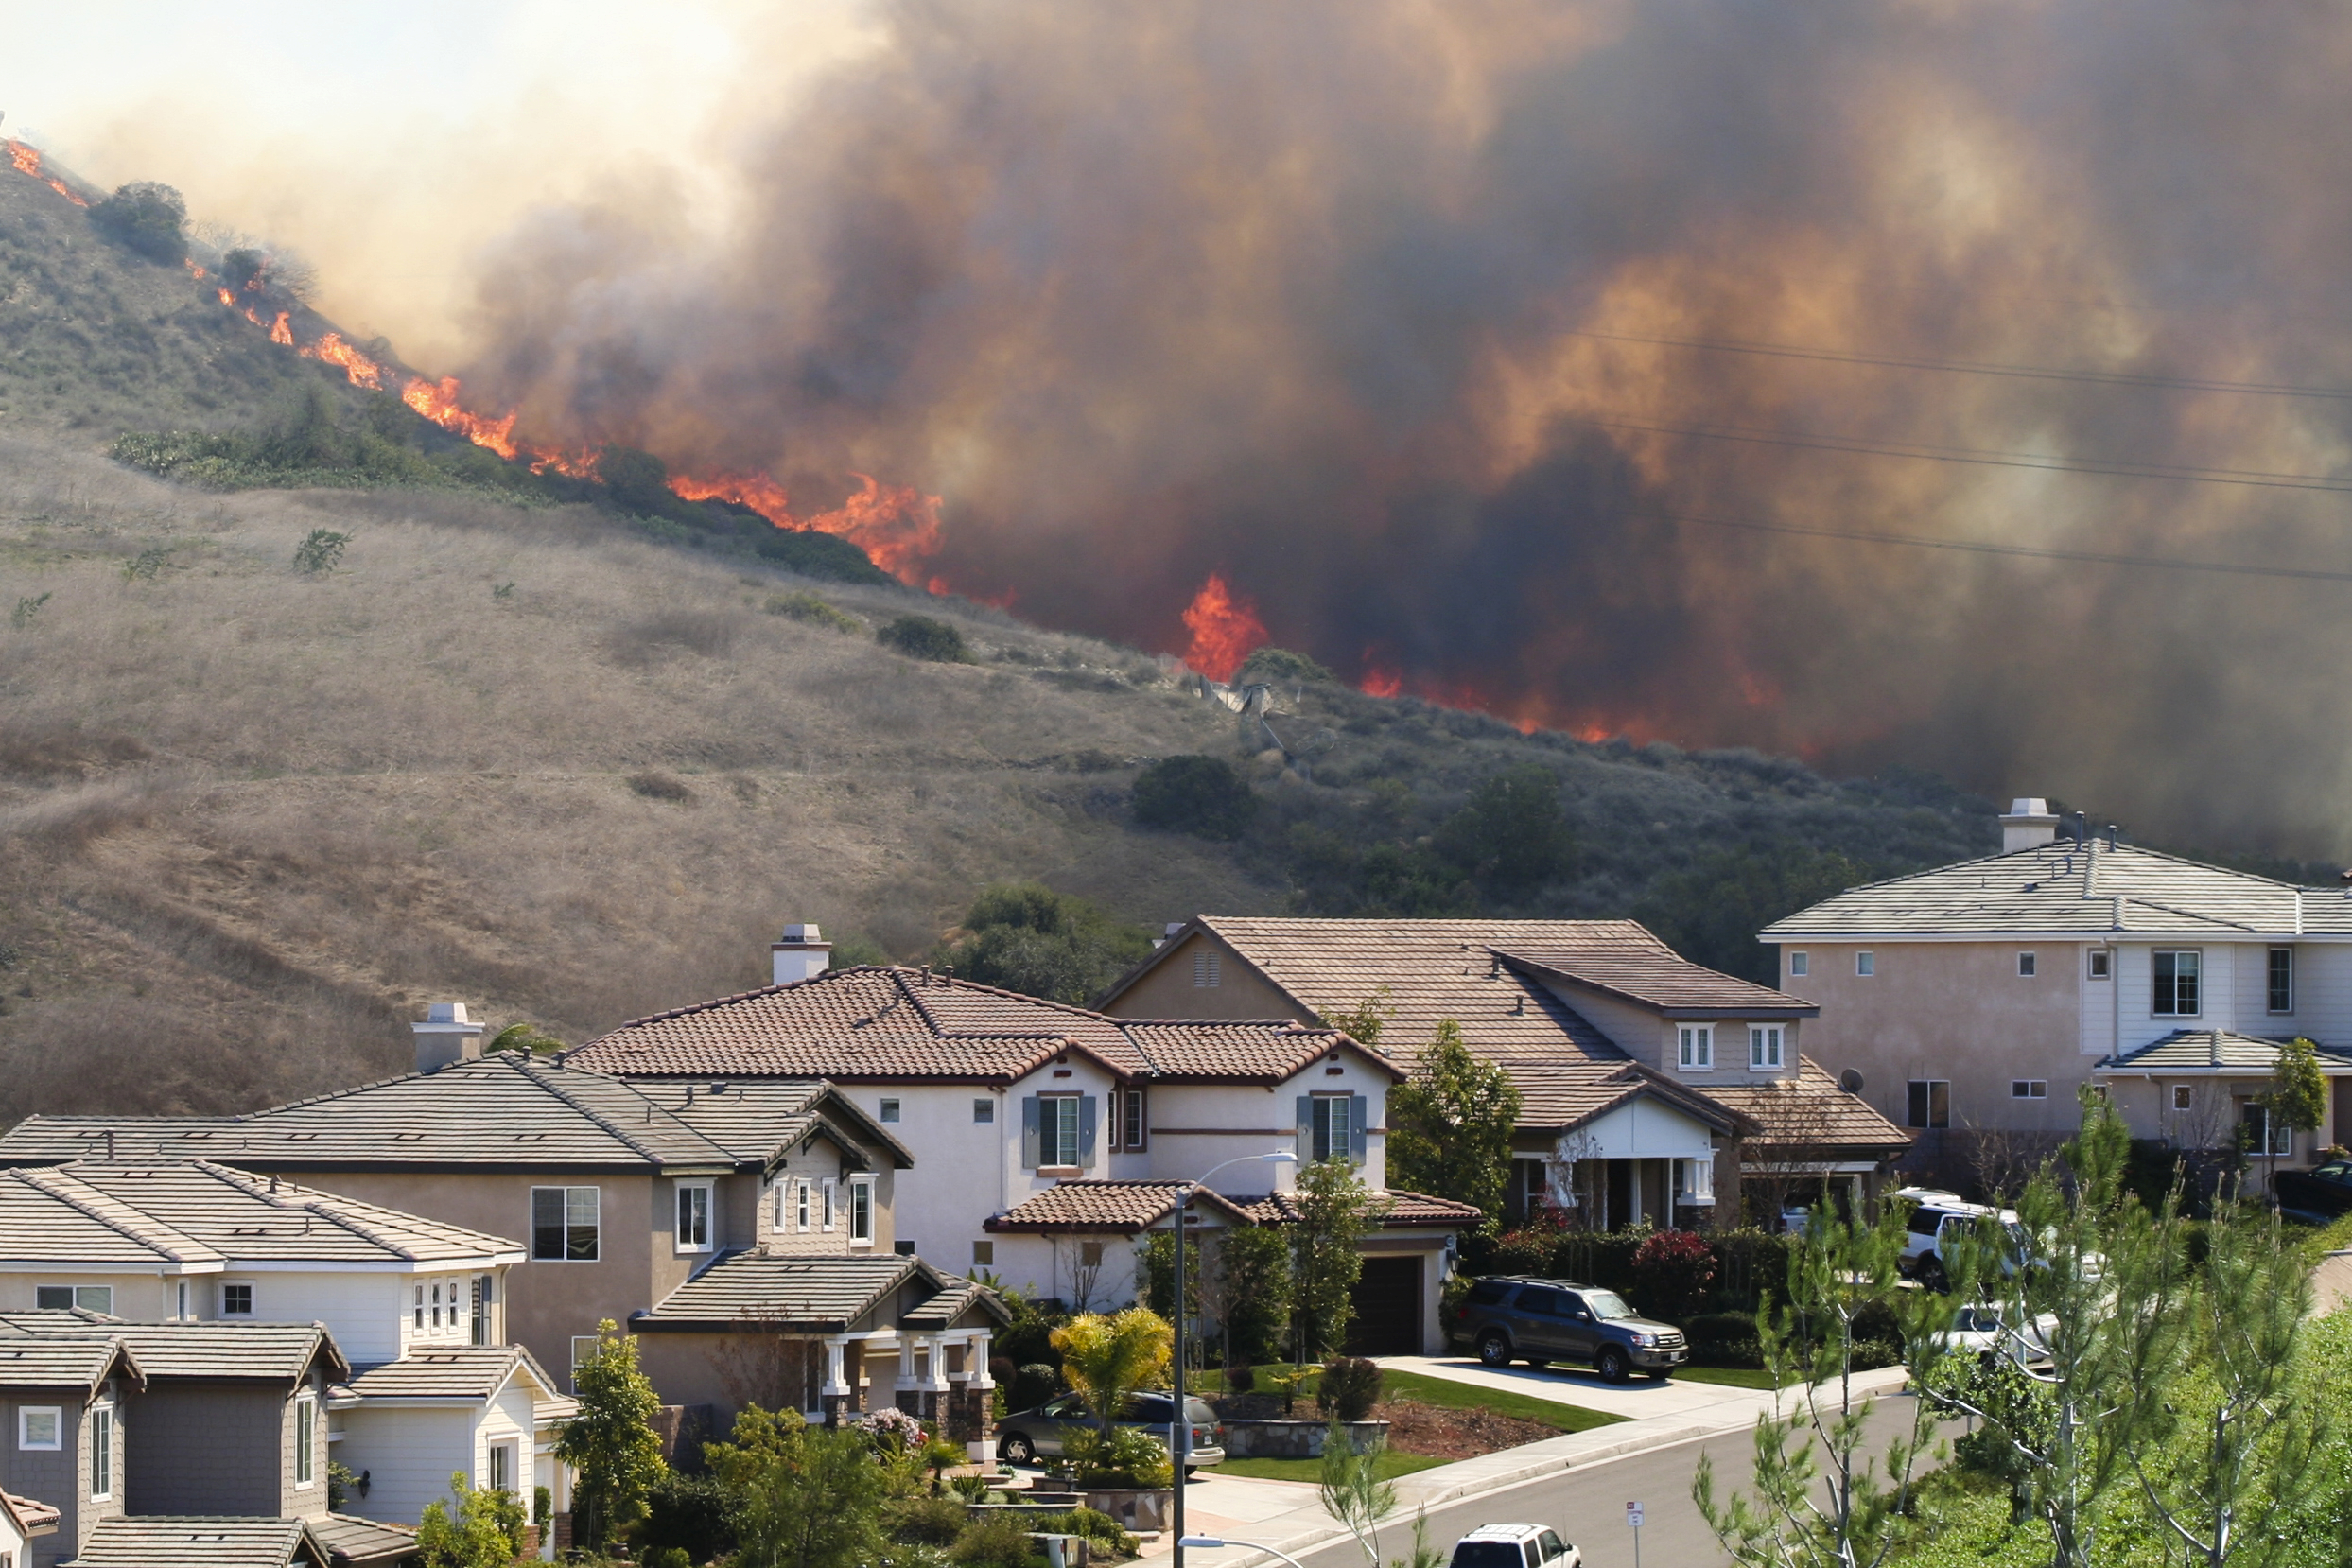 Wildfire burns on hill behind neighborhood homes